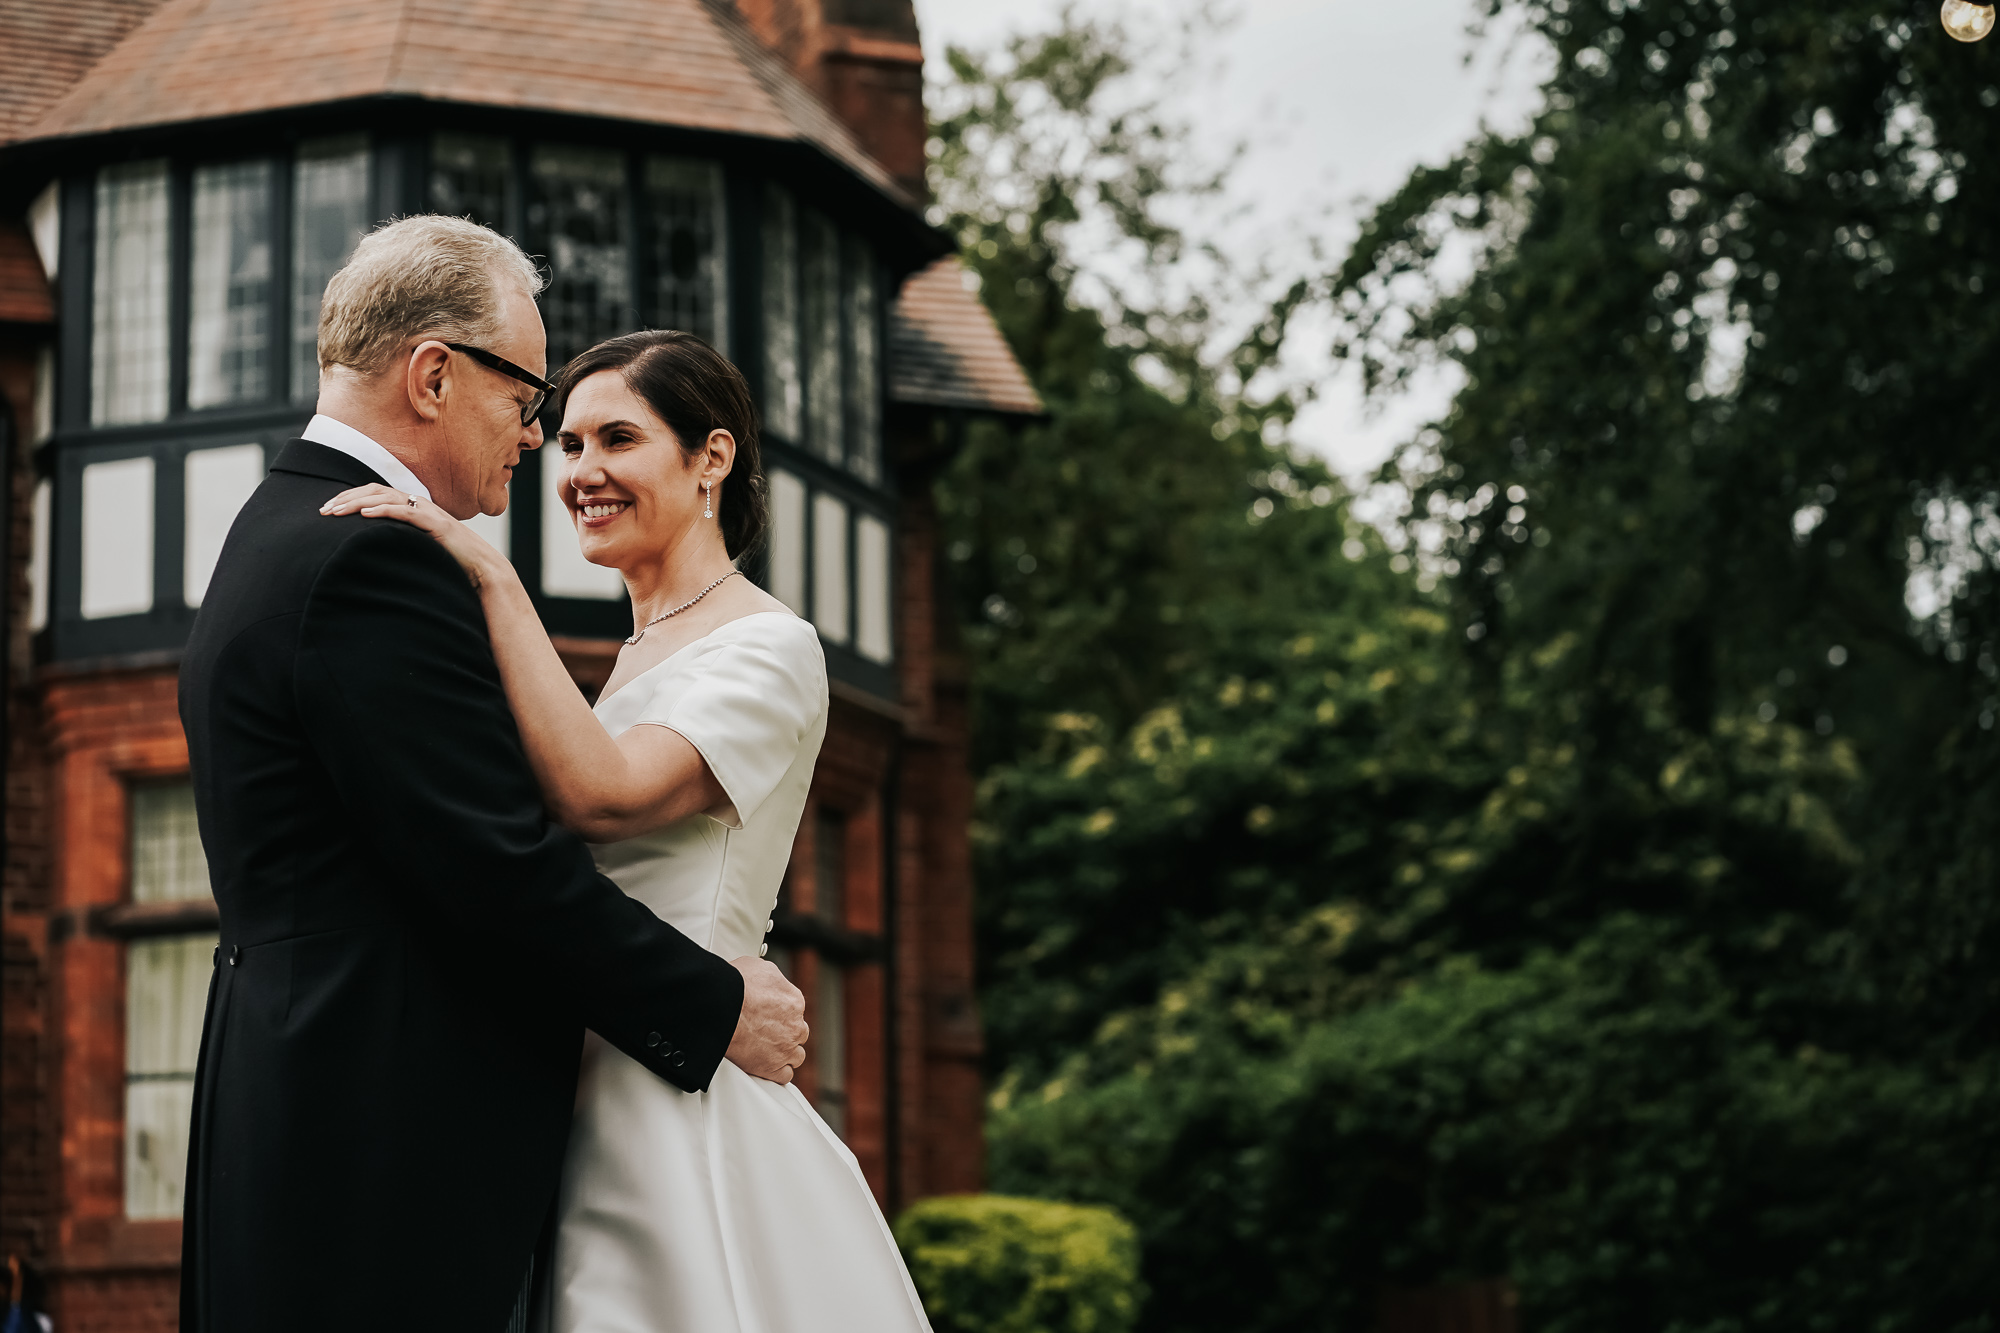 Cheshire wedding at home wedding photography (40 of 49).jpg